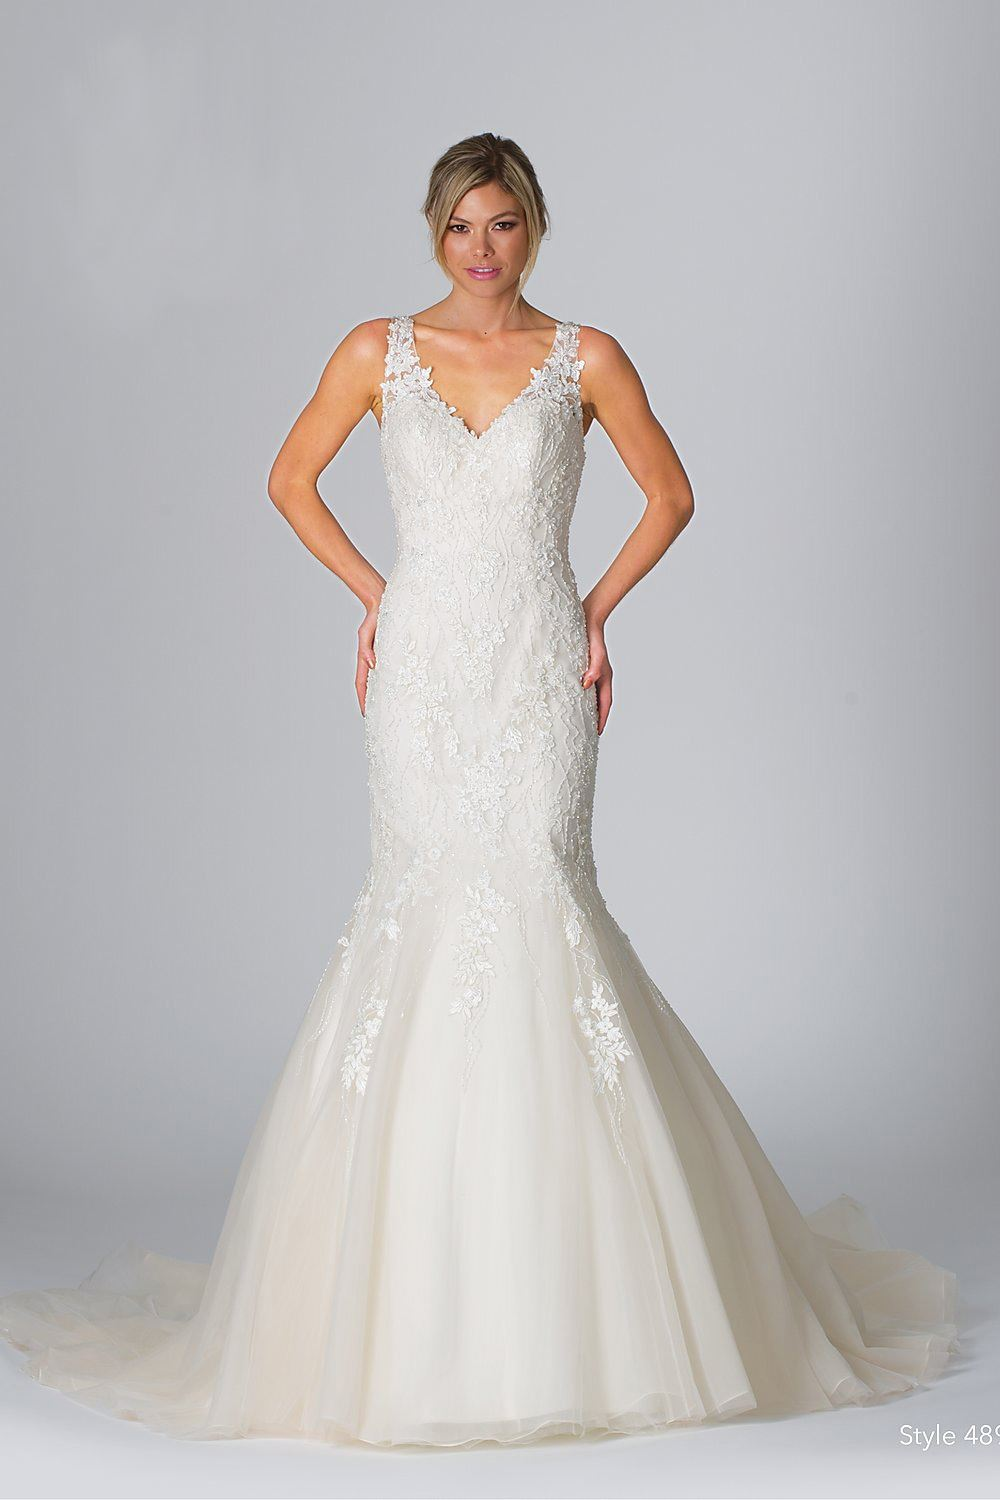 Alexa - Size 14 - Ivory/Light Gold - $1699 - Sample price $799